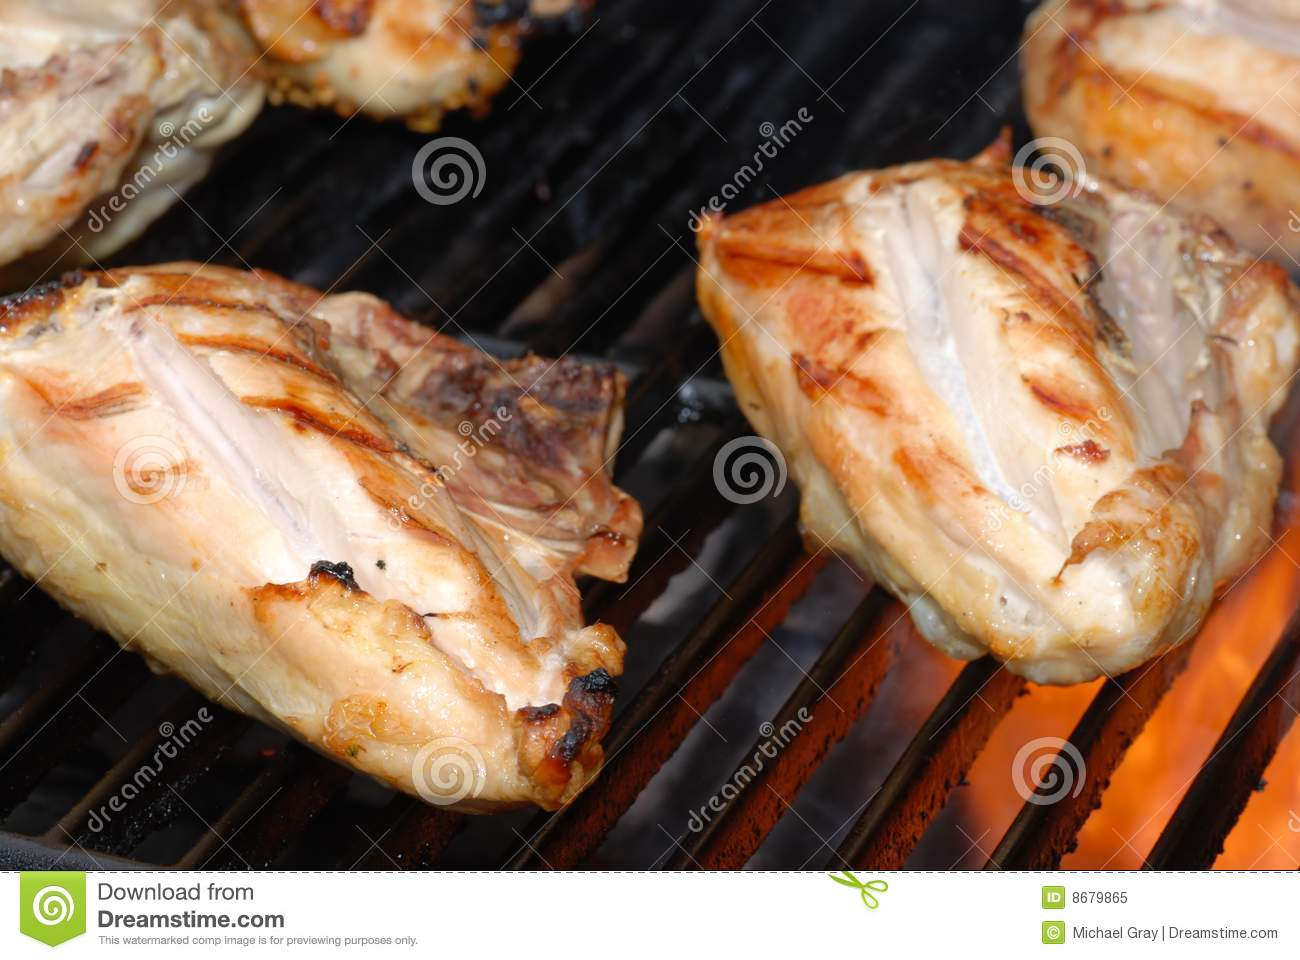 Barbecue Chicken On A Grill Stock Image - Image: 8679865